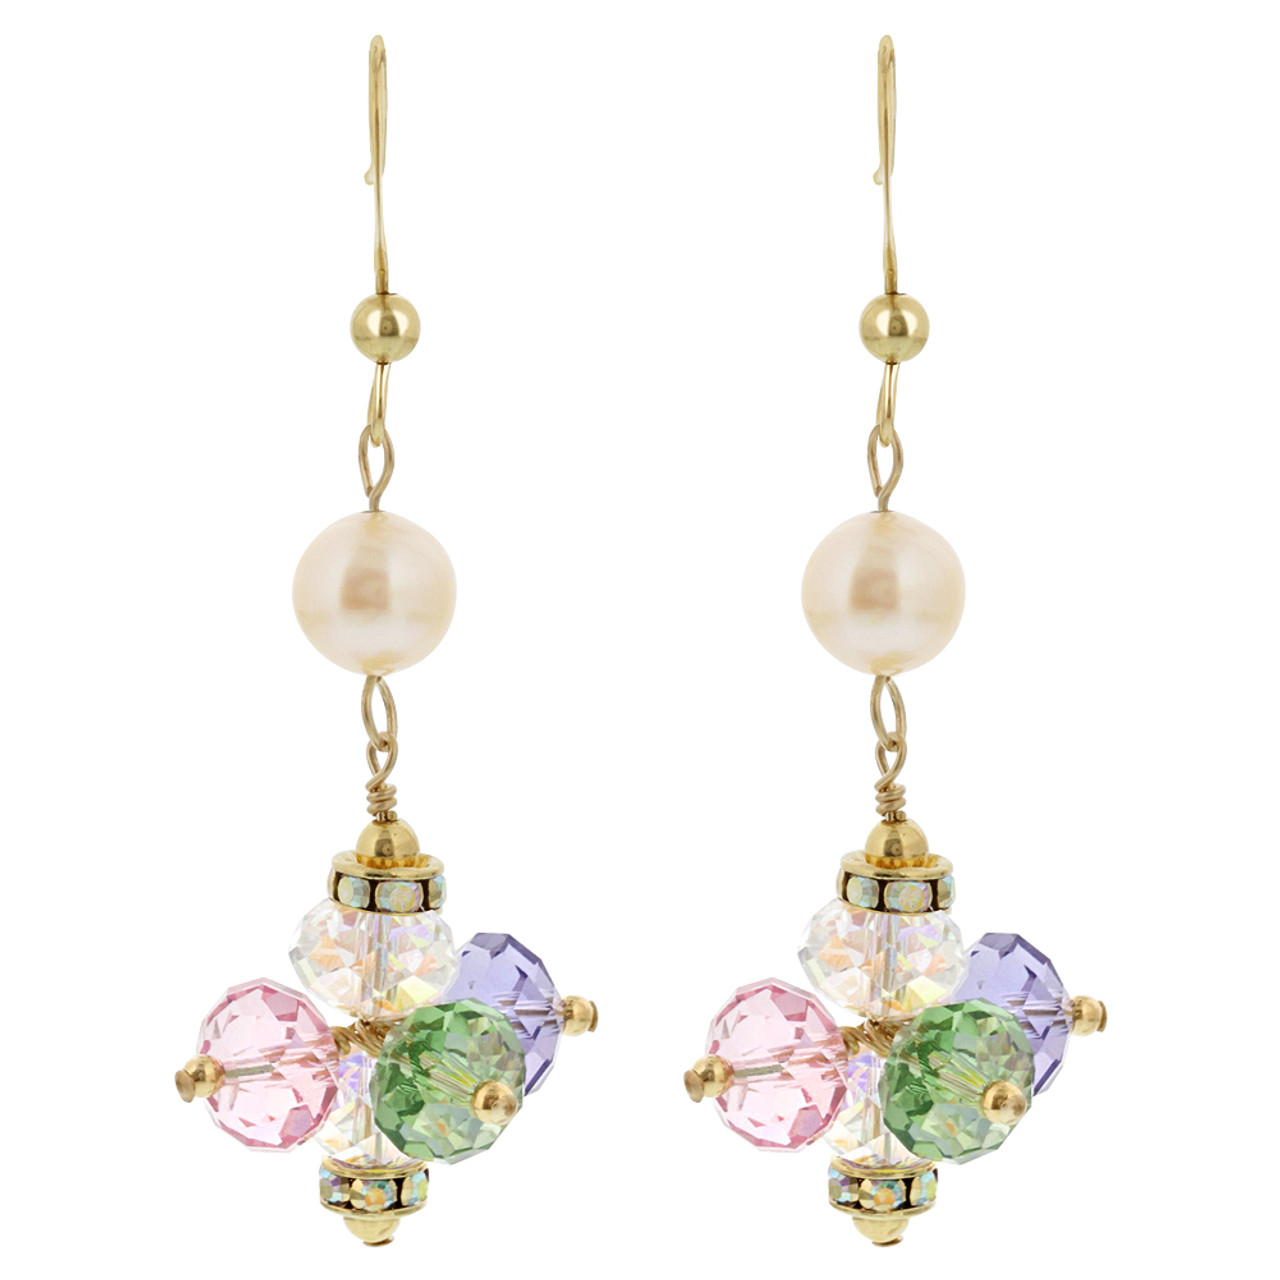 Gold filled Simulated Pearl Multi Crystal Dangle Earrings